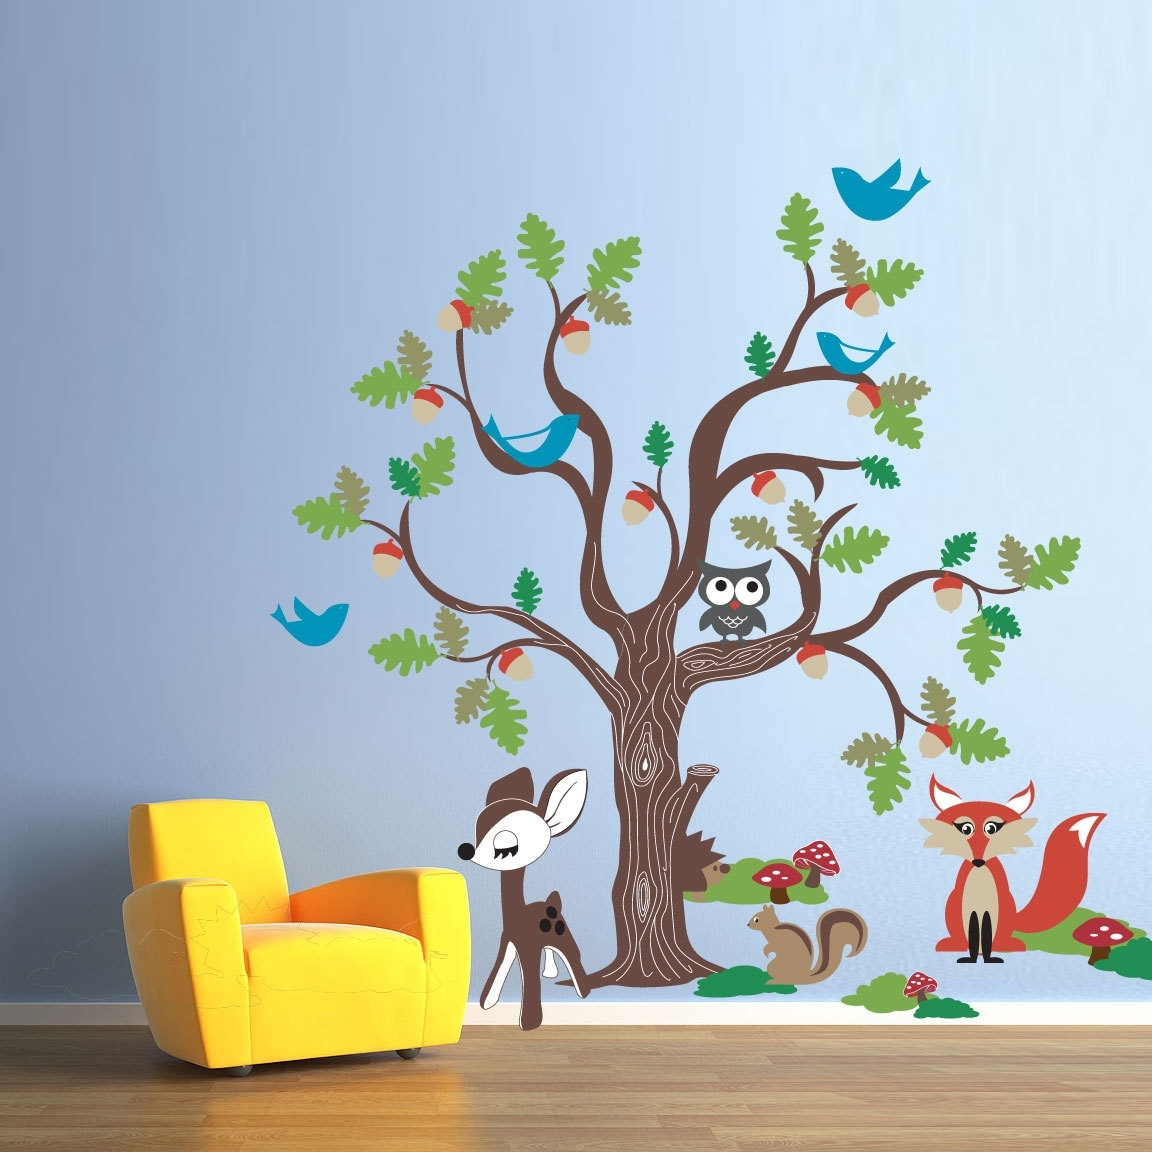 Recent Vinyl Wall Decal Sticker Art – Oak Tree And Woodland Animals Pertaining To Oak Tree Vinyl Wall Art (Gallery 2 of 15)